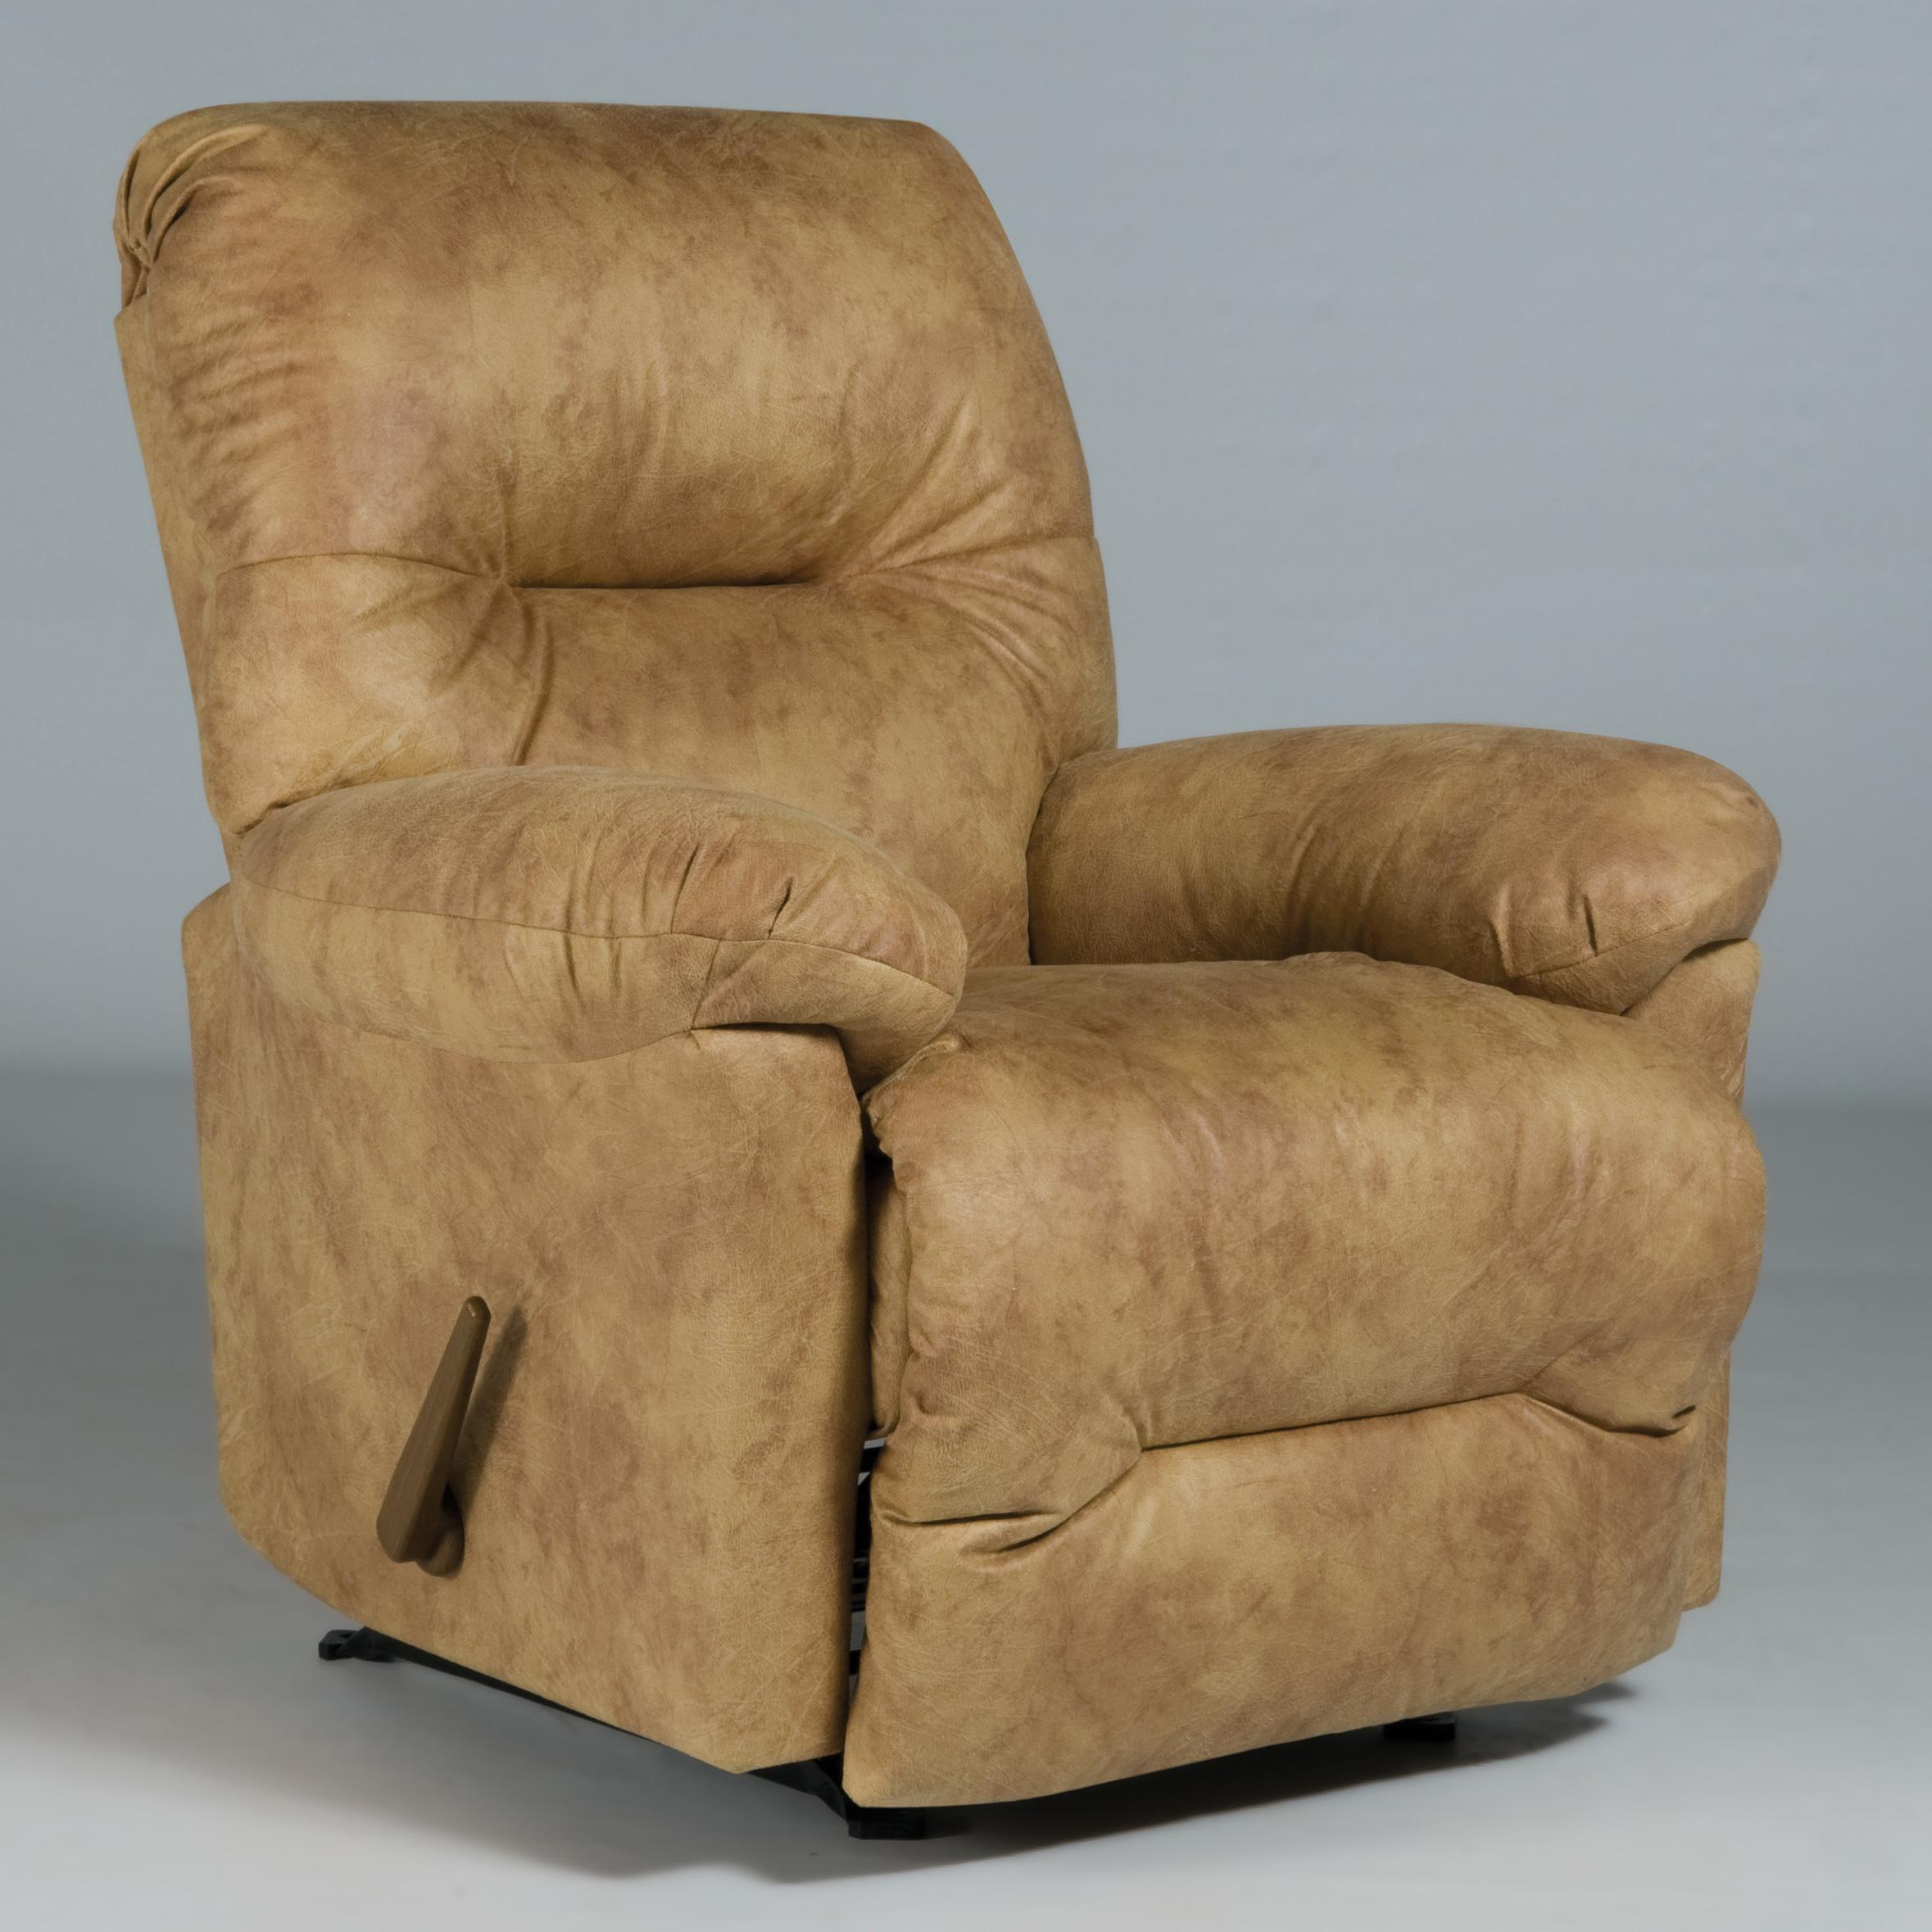 Best Home Furnishings Recliners - Medium Rodney Swivel Glider Recliner - Item Number: 6N25